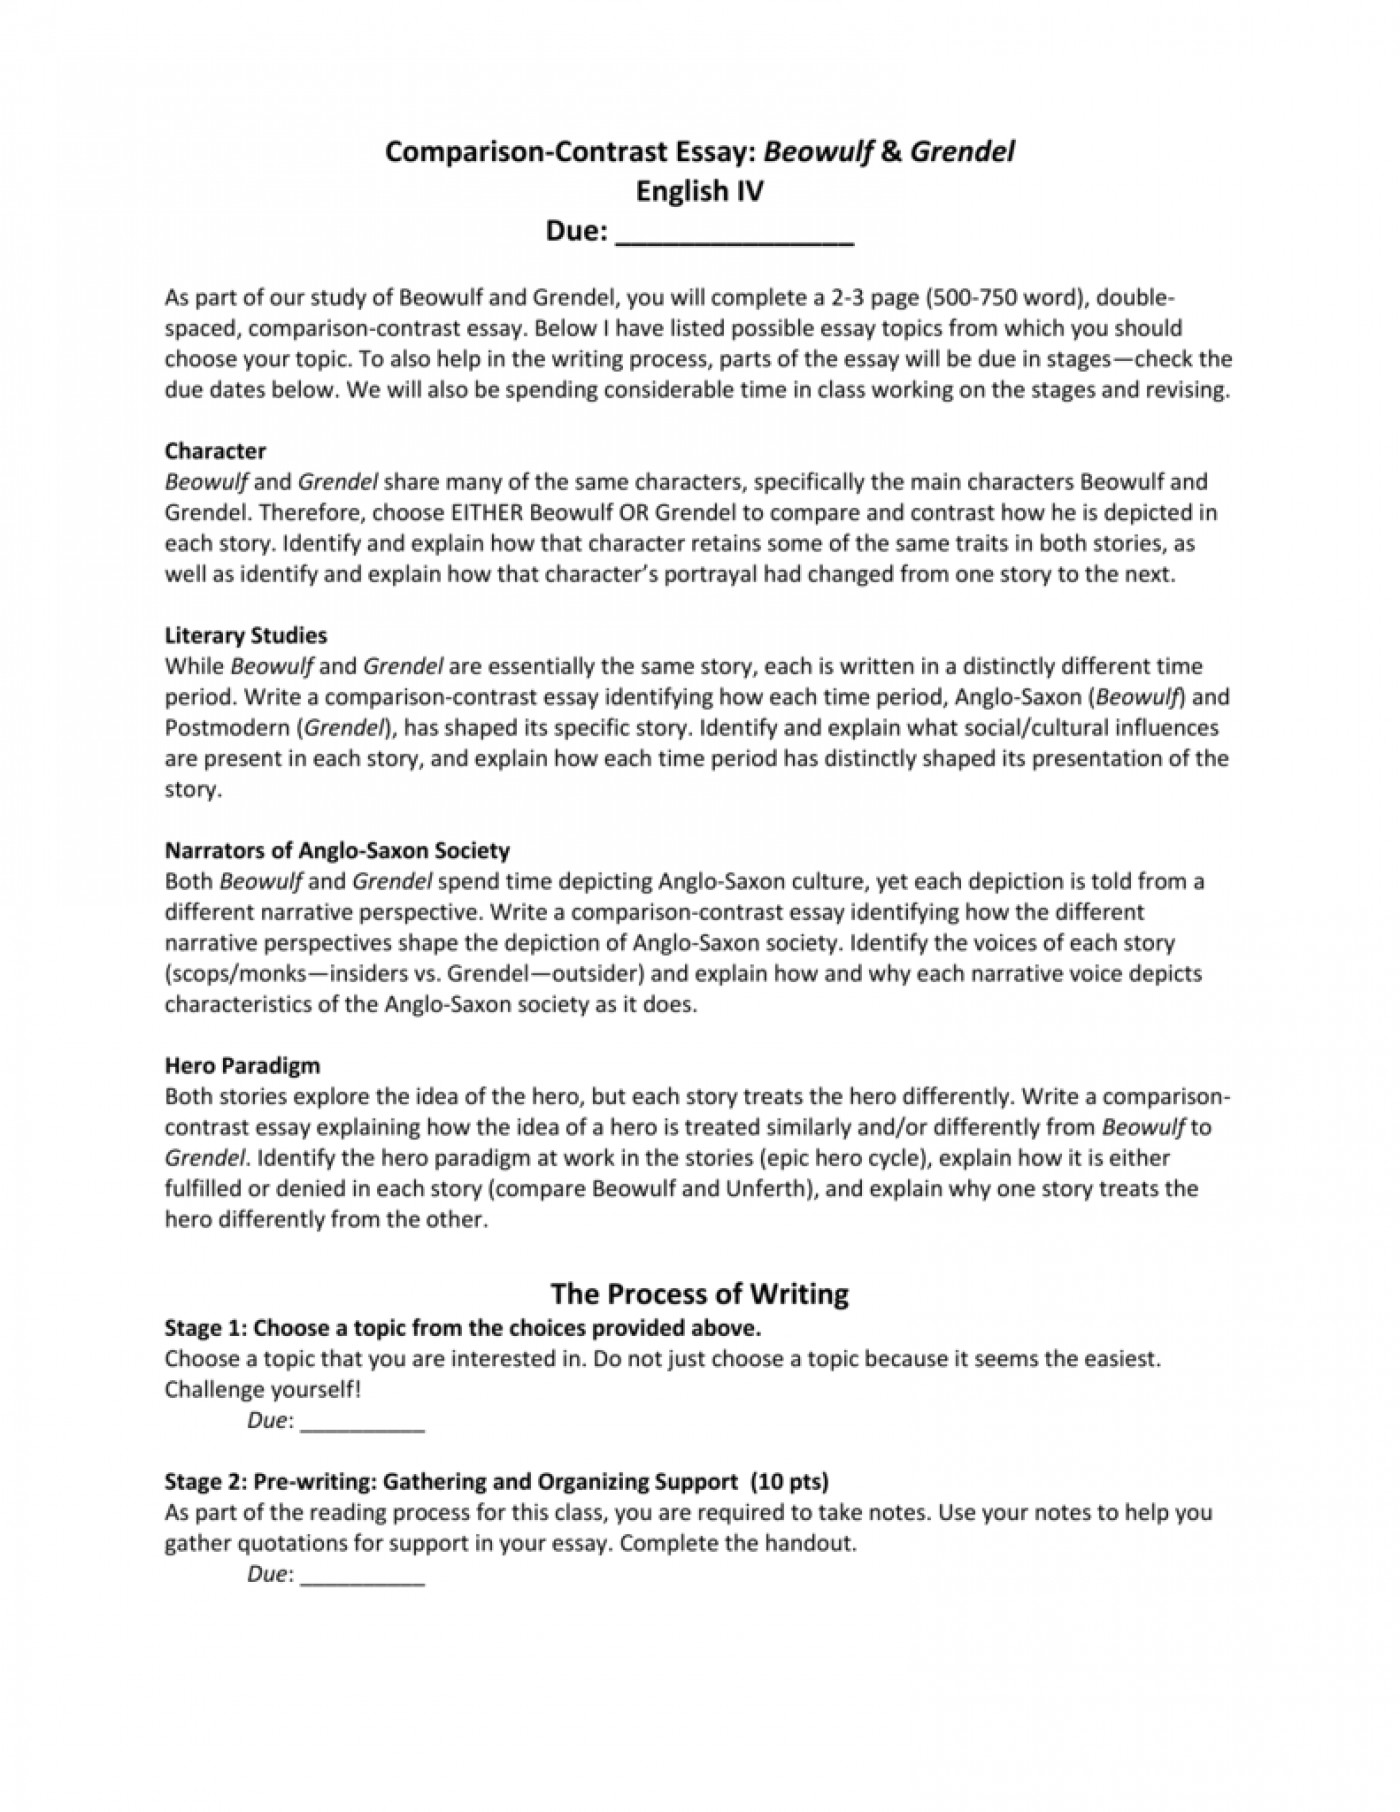 010 Compare And Contrast Essay 008061732 1 Frightening Prompts 5th Grade Rubric College Ideas 12th 1400